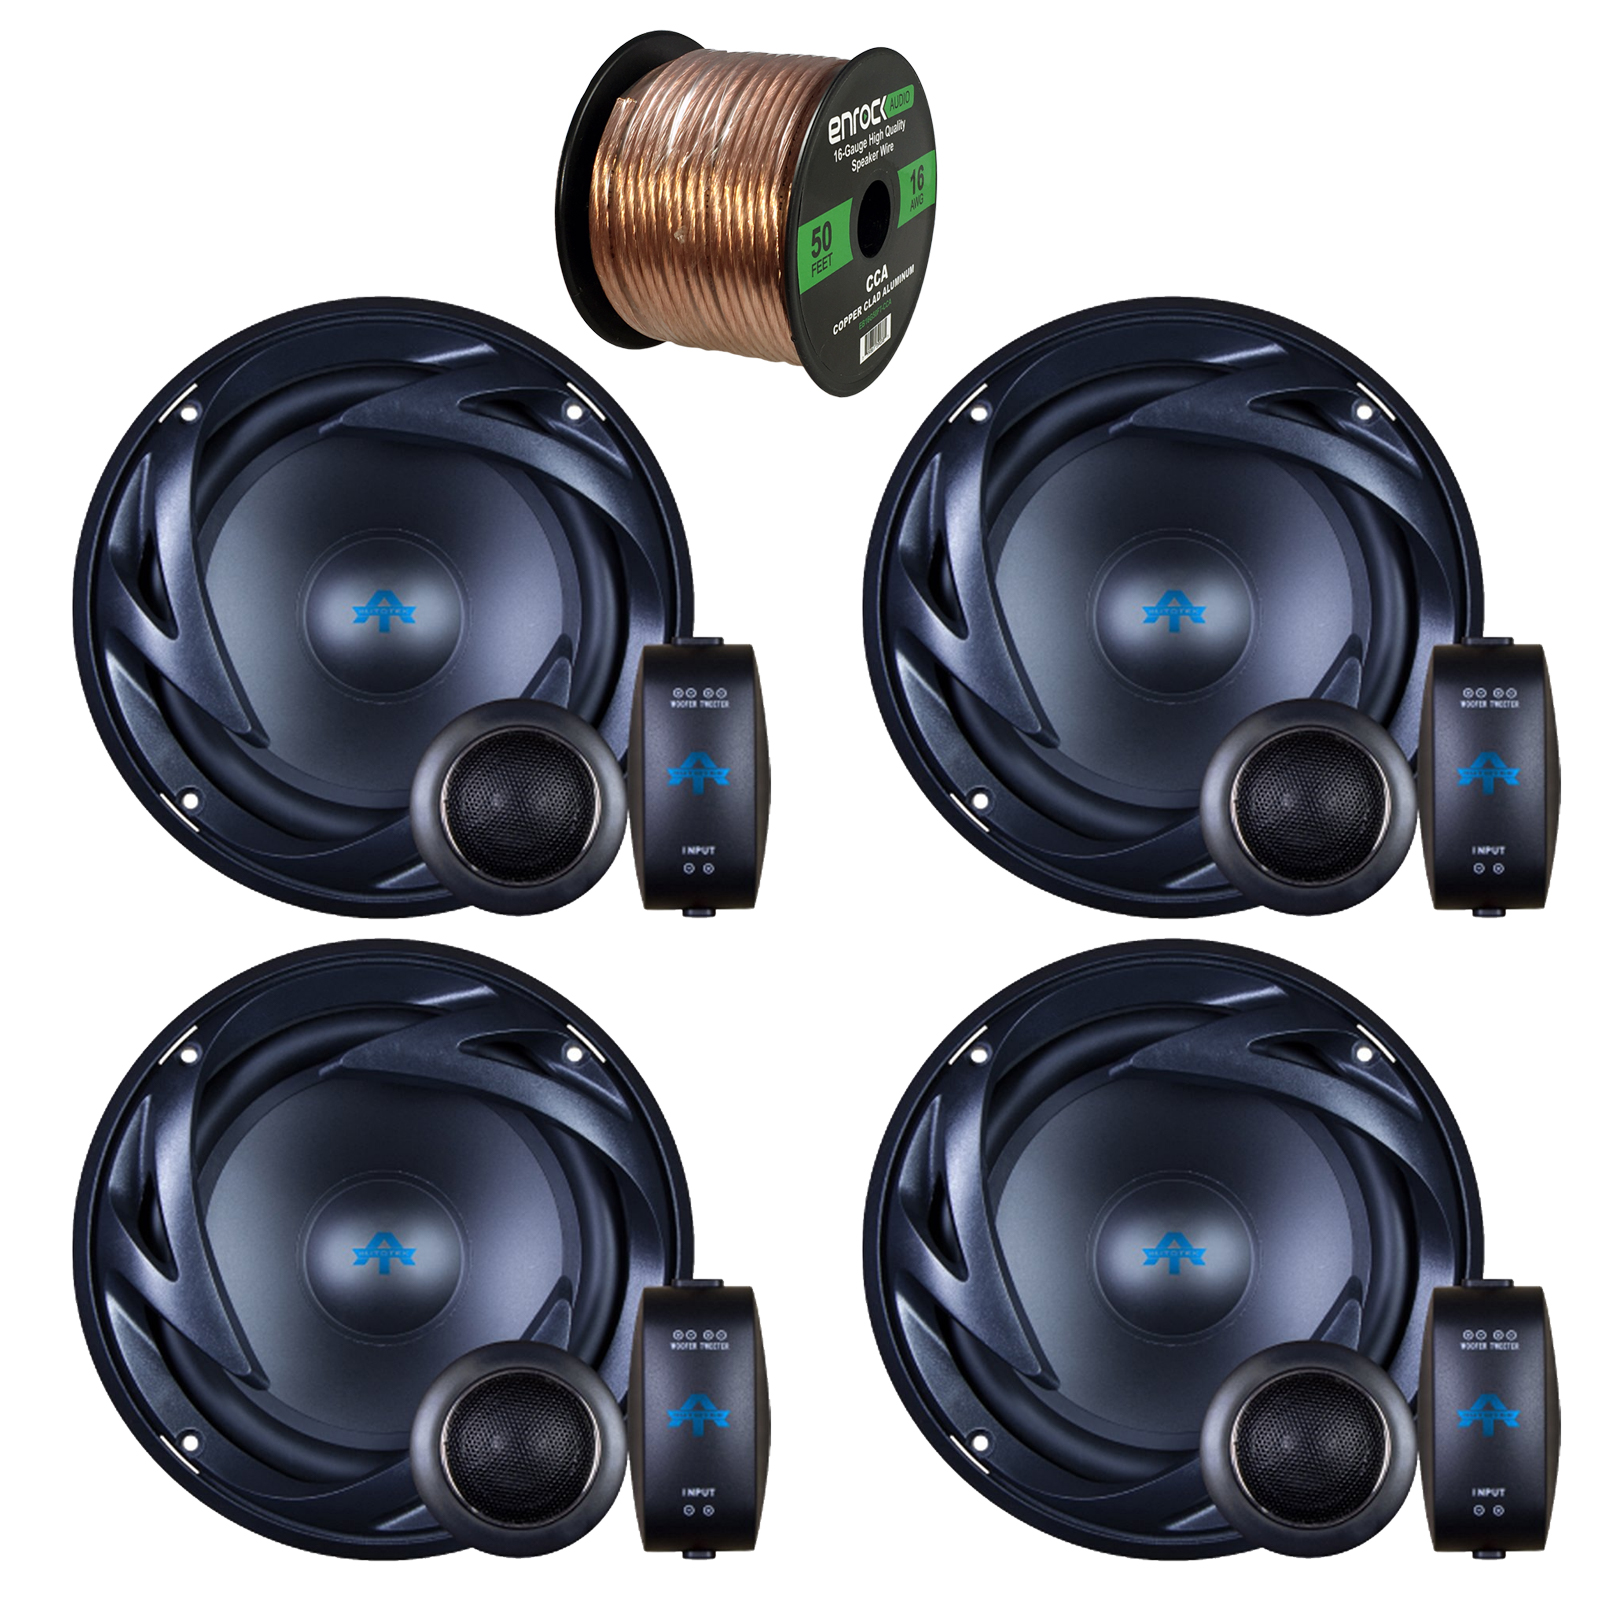 4 x Autotek ATS65C ATS Car Audio Speakers 6.5 Inch Equipted With Neo-Mylar Soft Dome Tweeter Bundle With Enrock 50ft 16g Speaker Wire